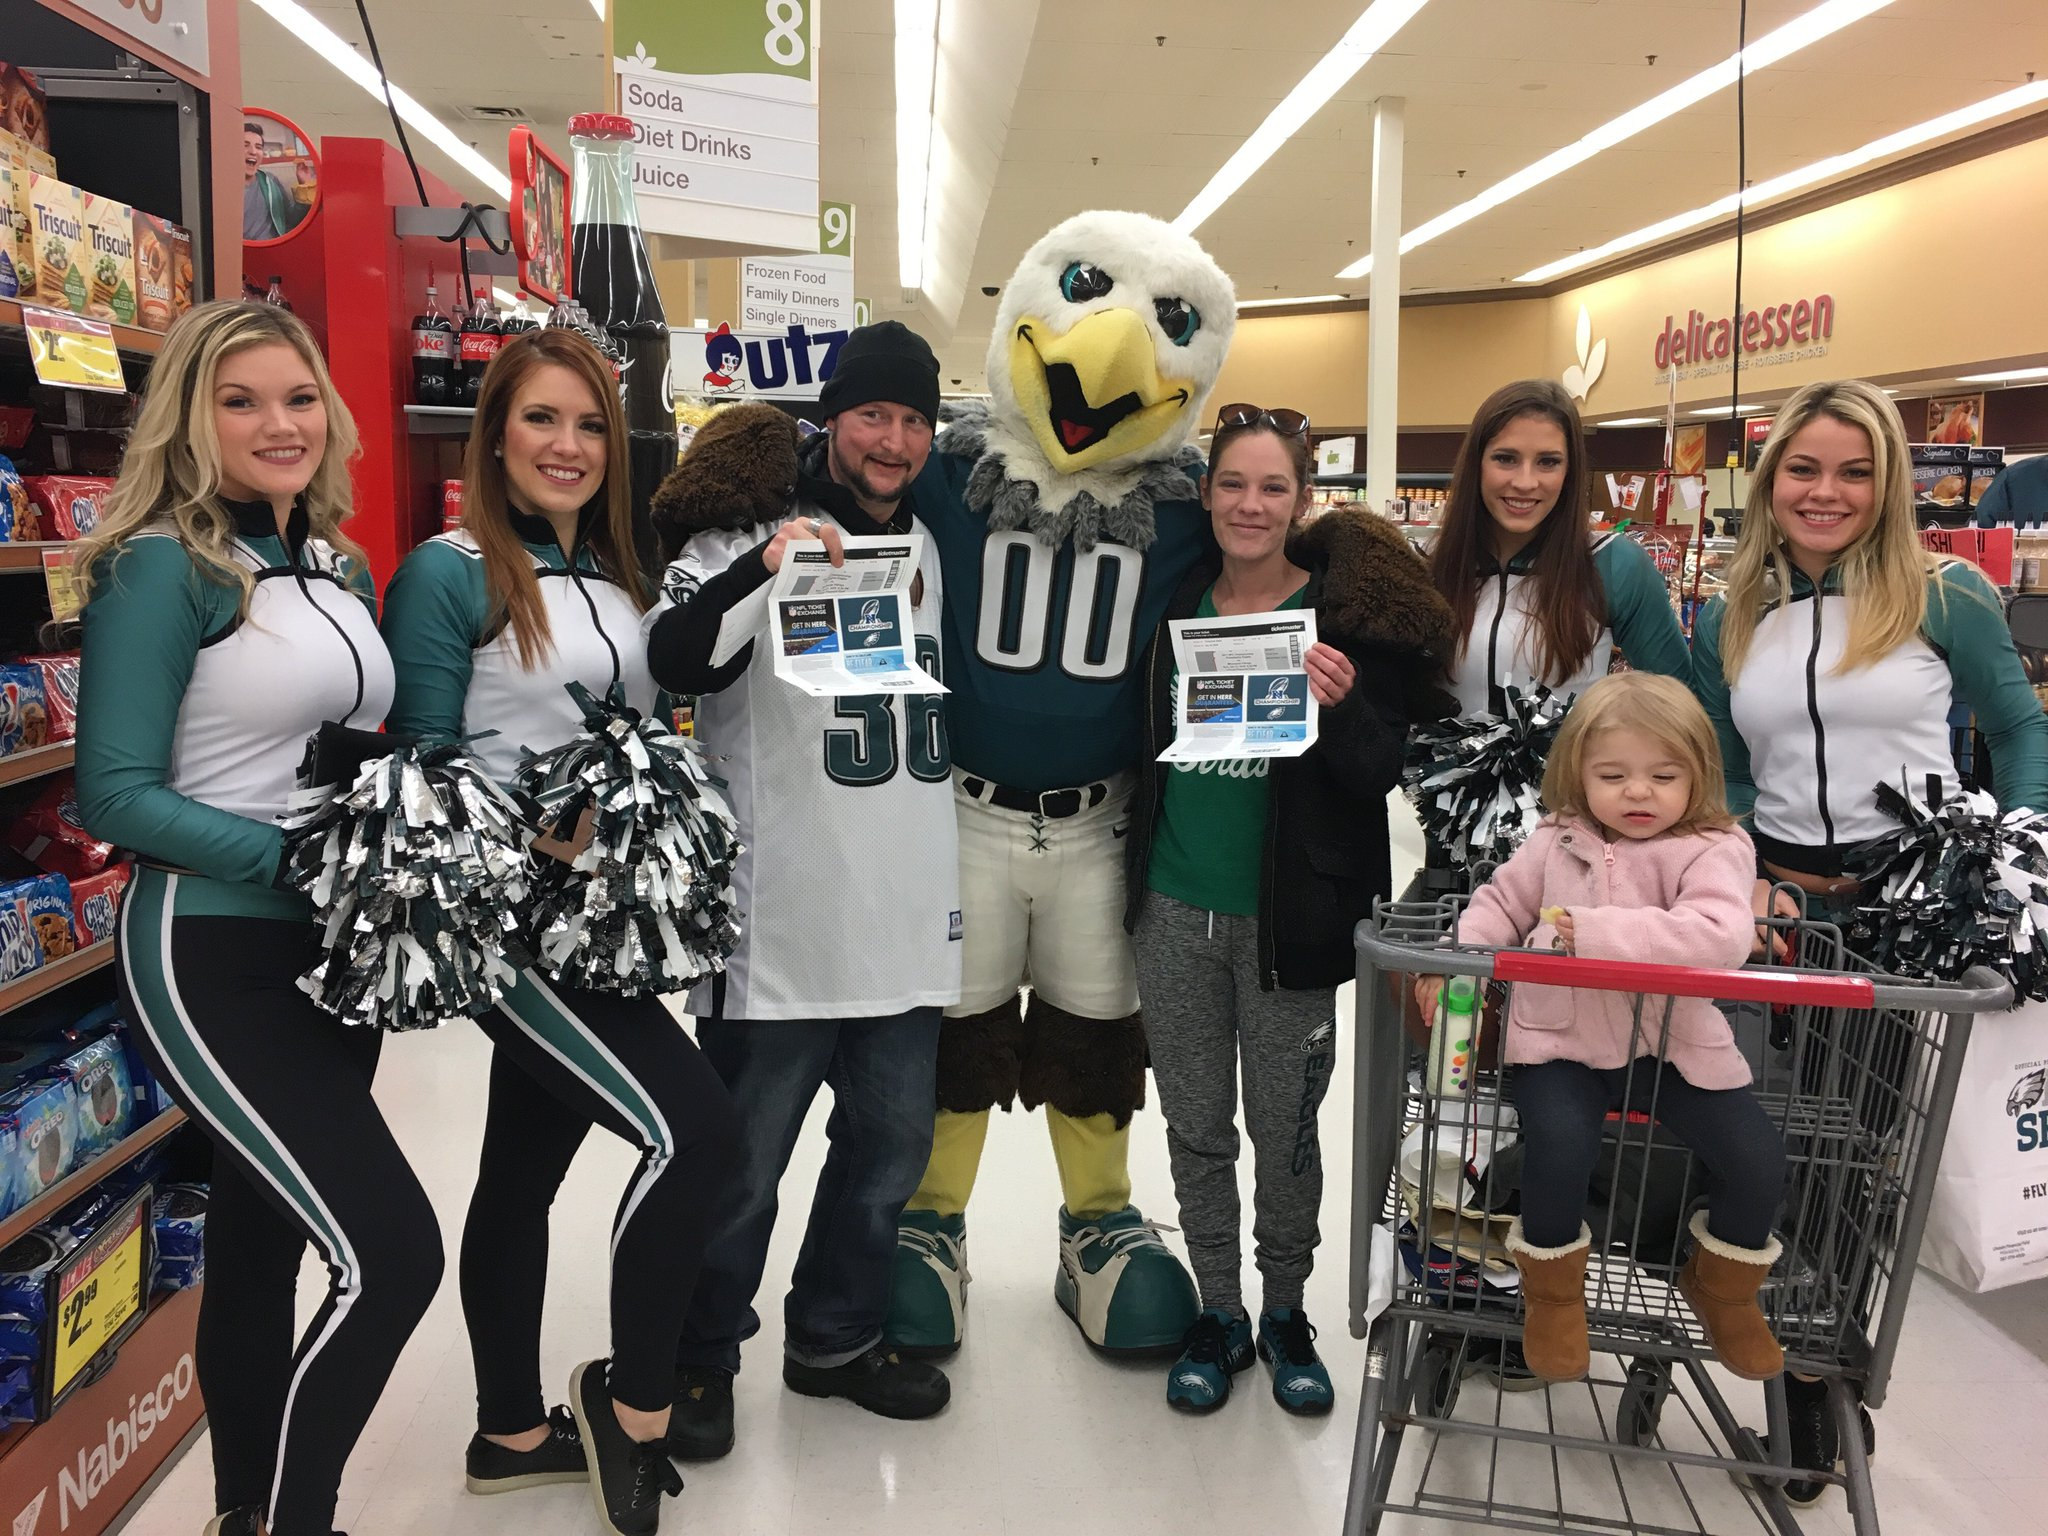 Congrats to the winners from today's Playoff PopUp at @acmemarkets!  #FlyEaglesFly https://t.co/IDwkbcf1J0